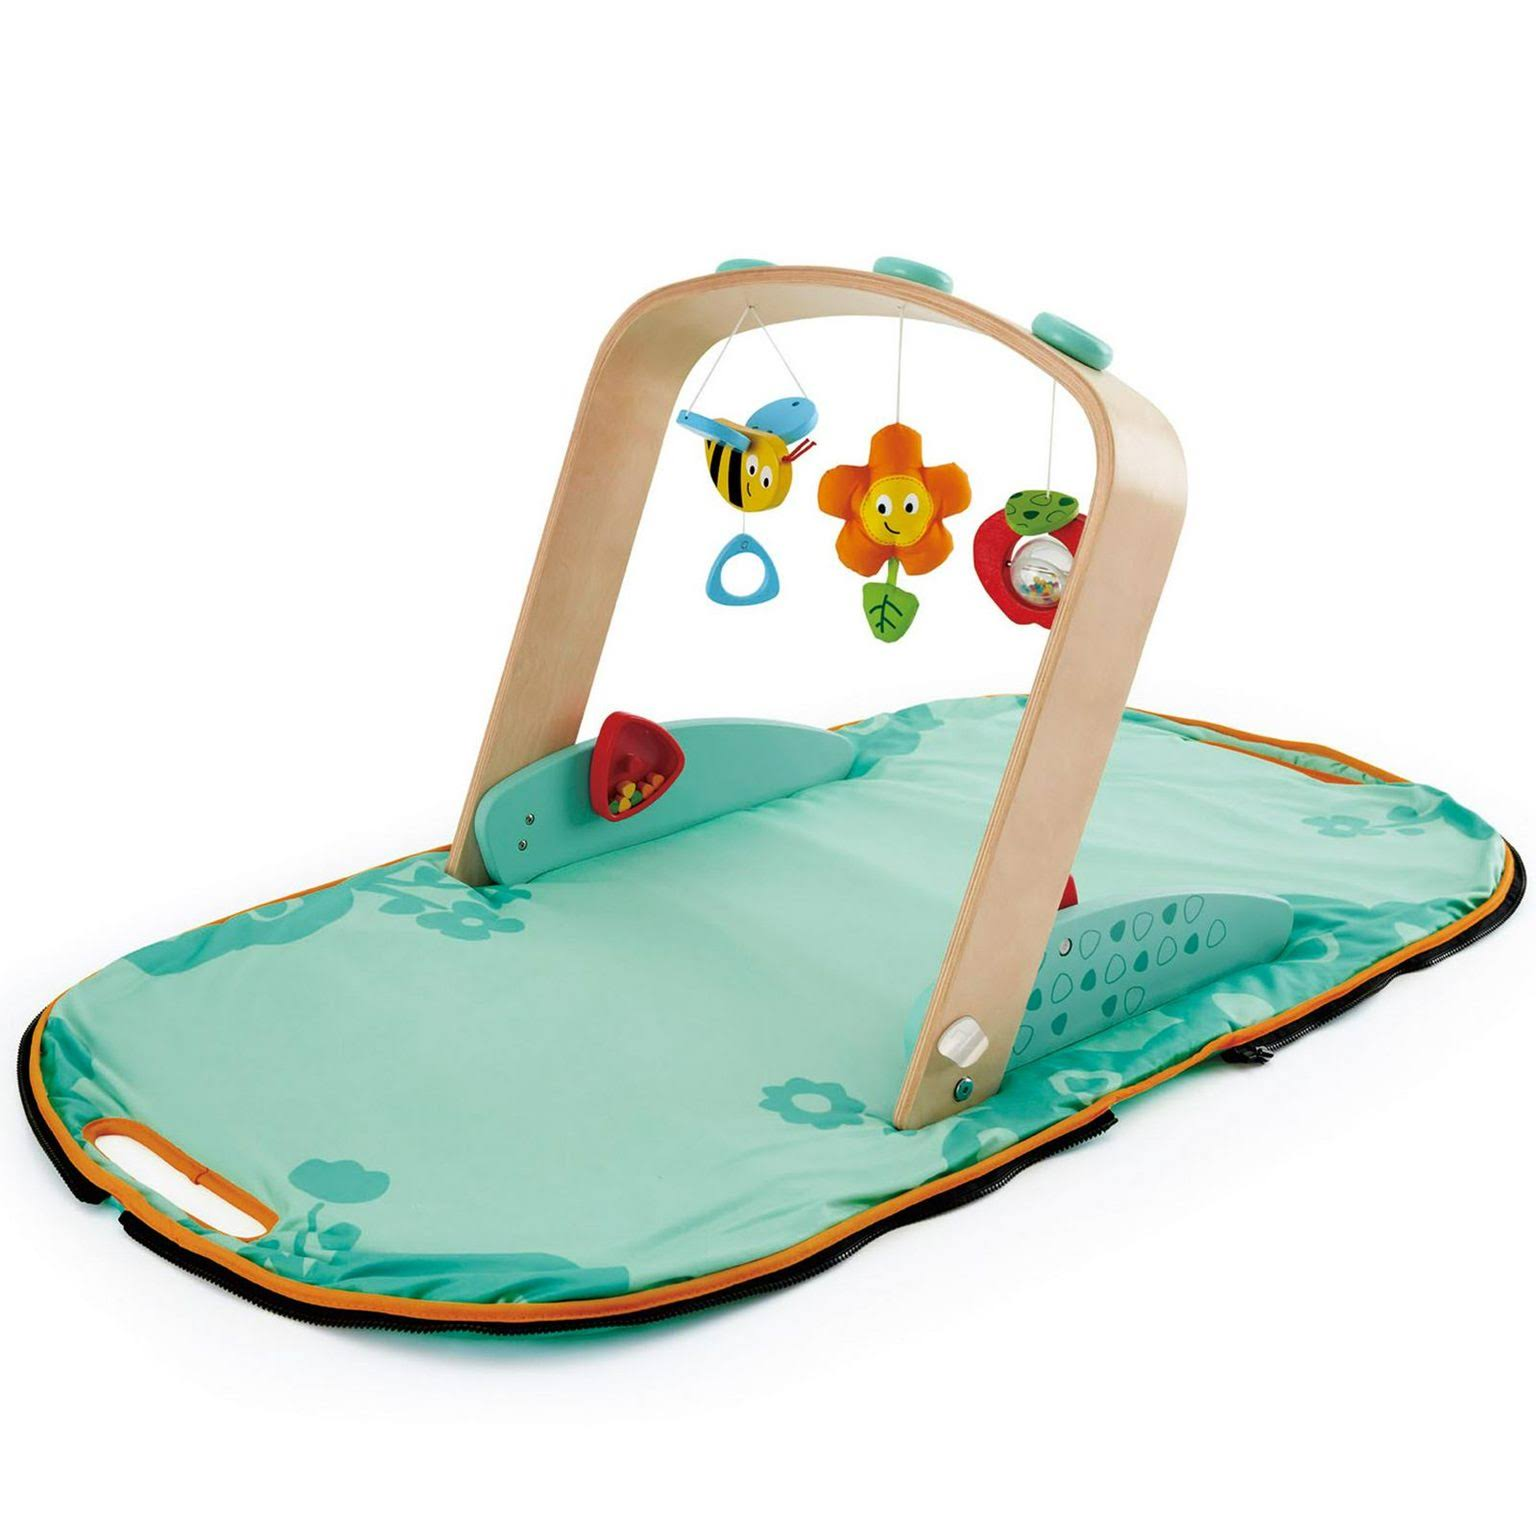 Hape Portable Baby Gym Toy